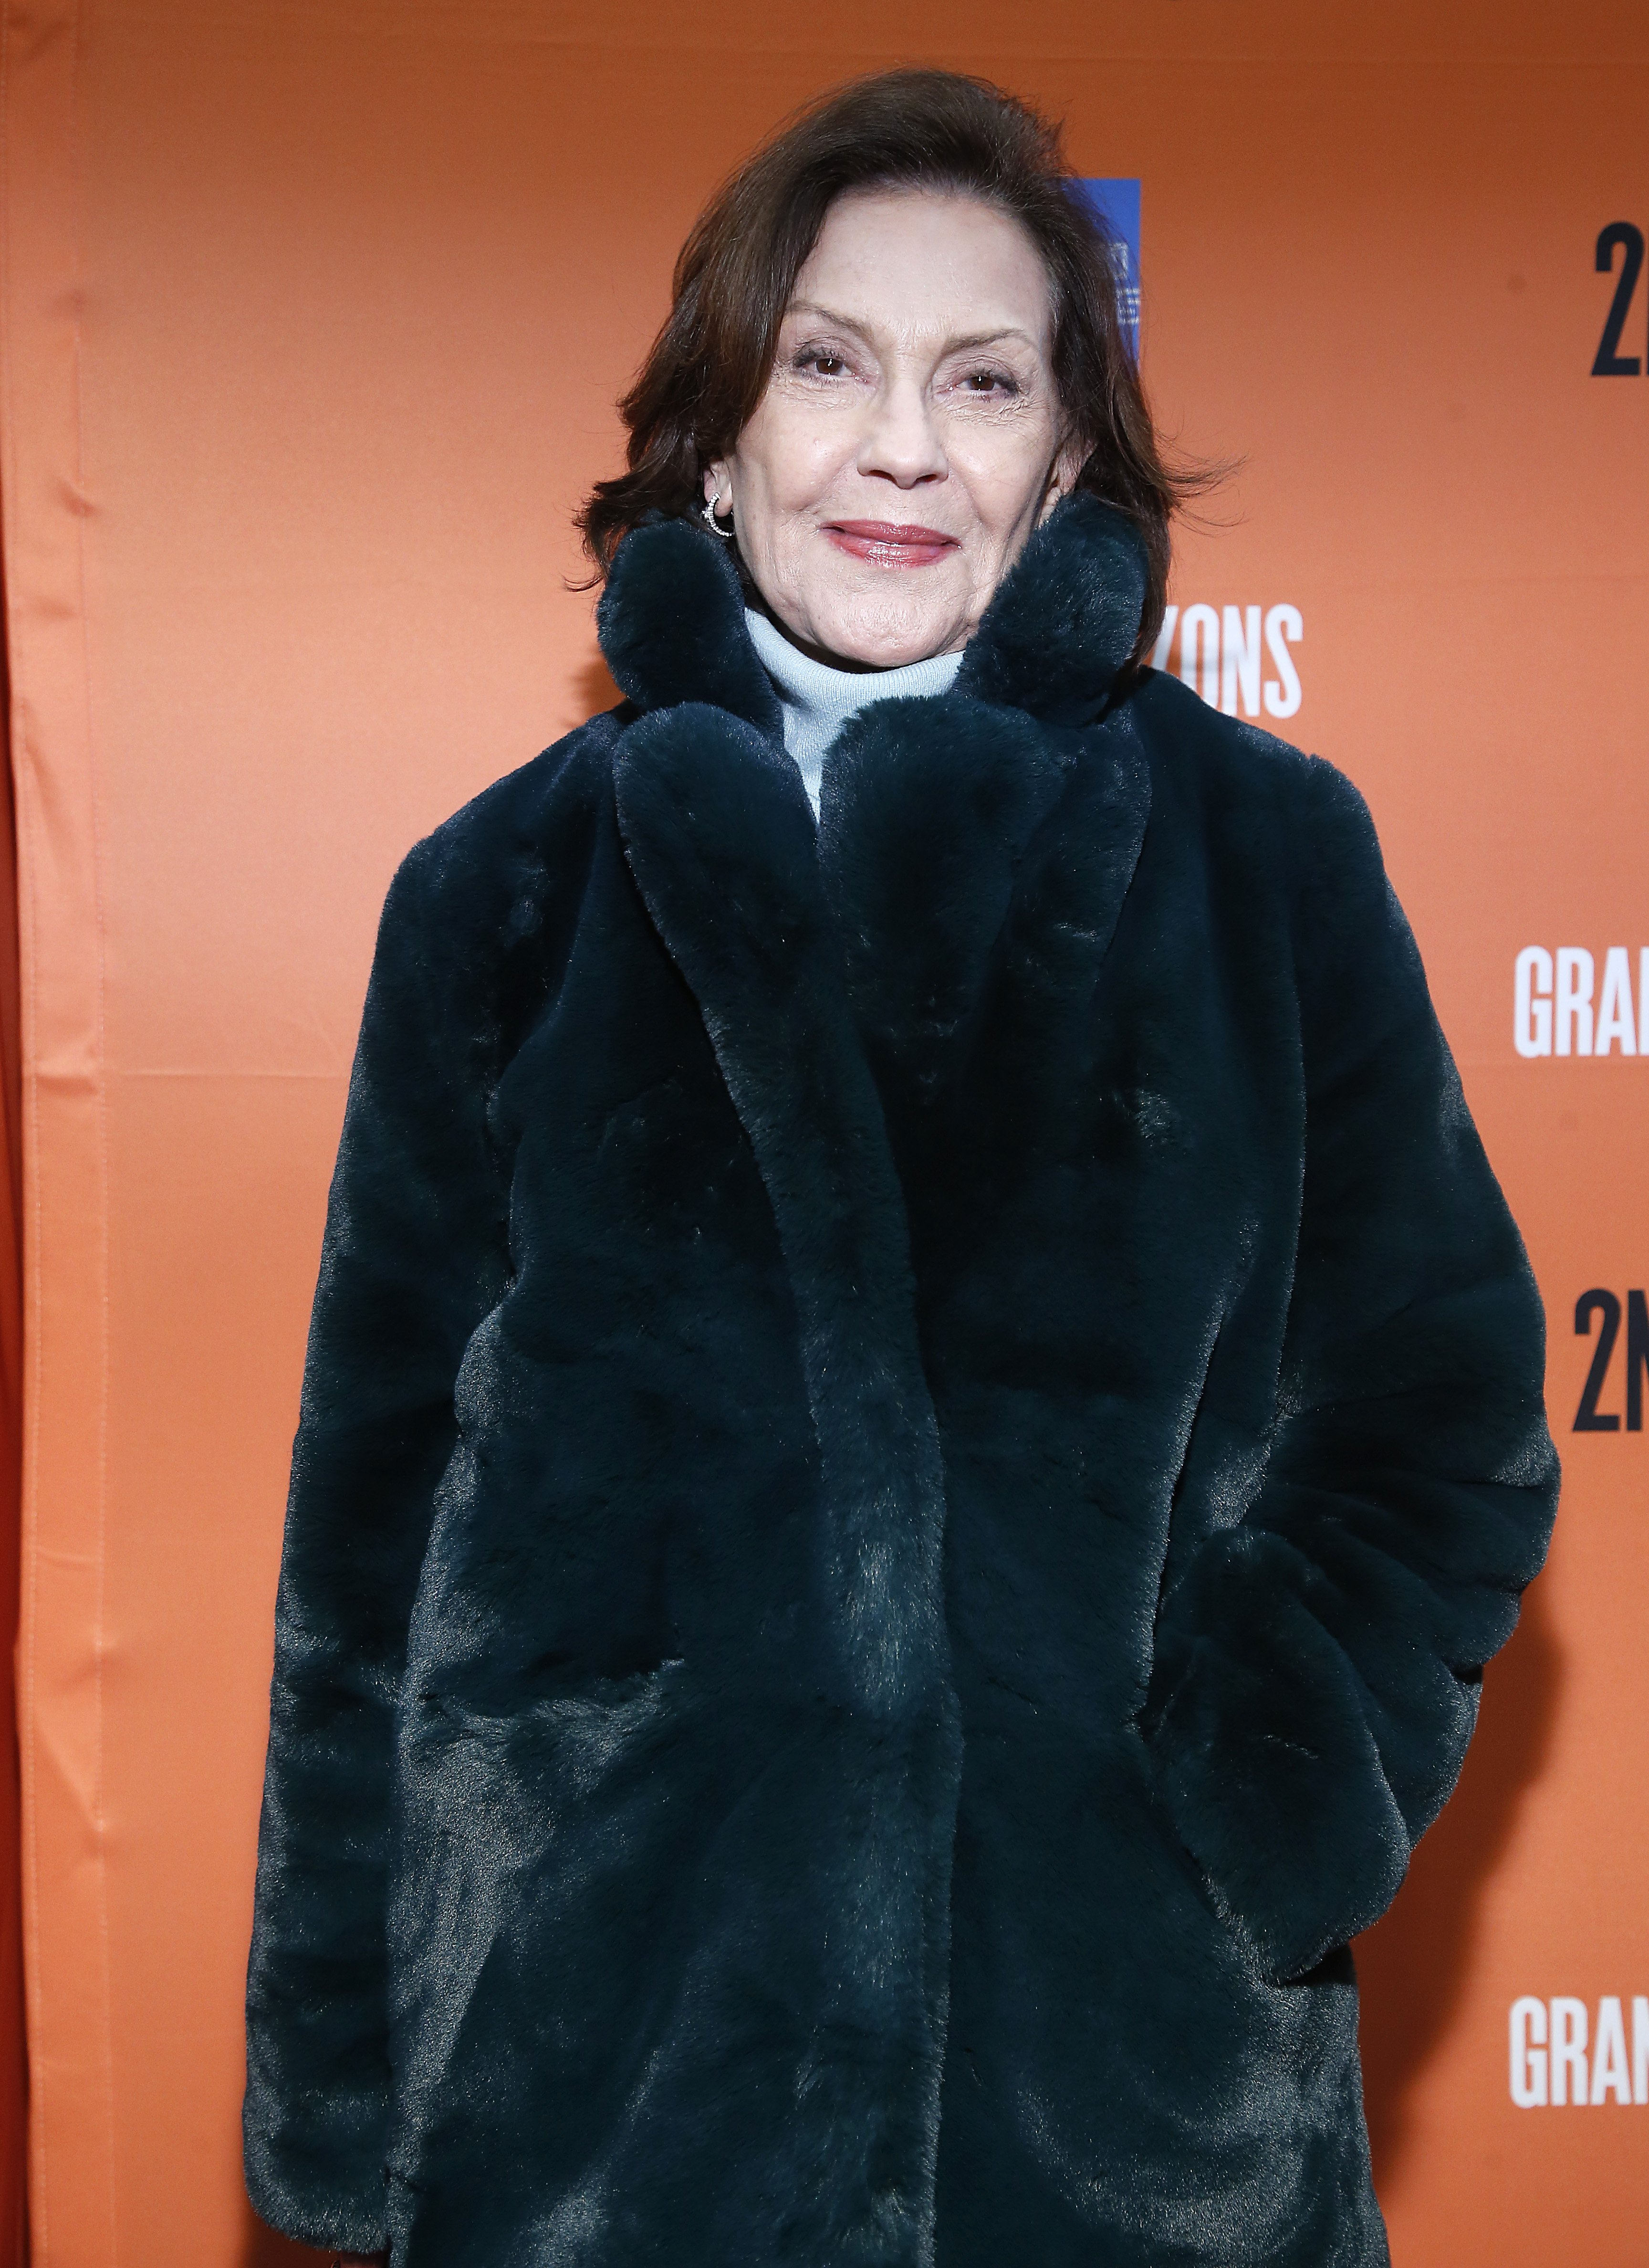 Kelly Bishop im Hayes Theatre am 23. Januar 2020 in New York City. | Quelle: Getty Images